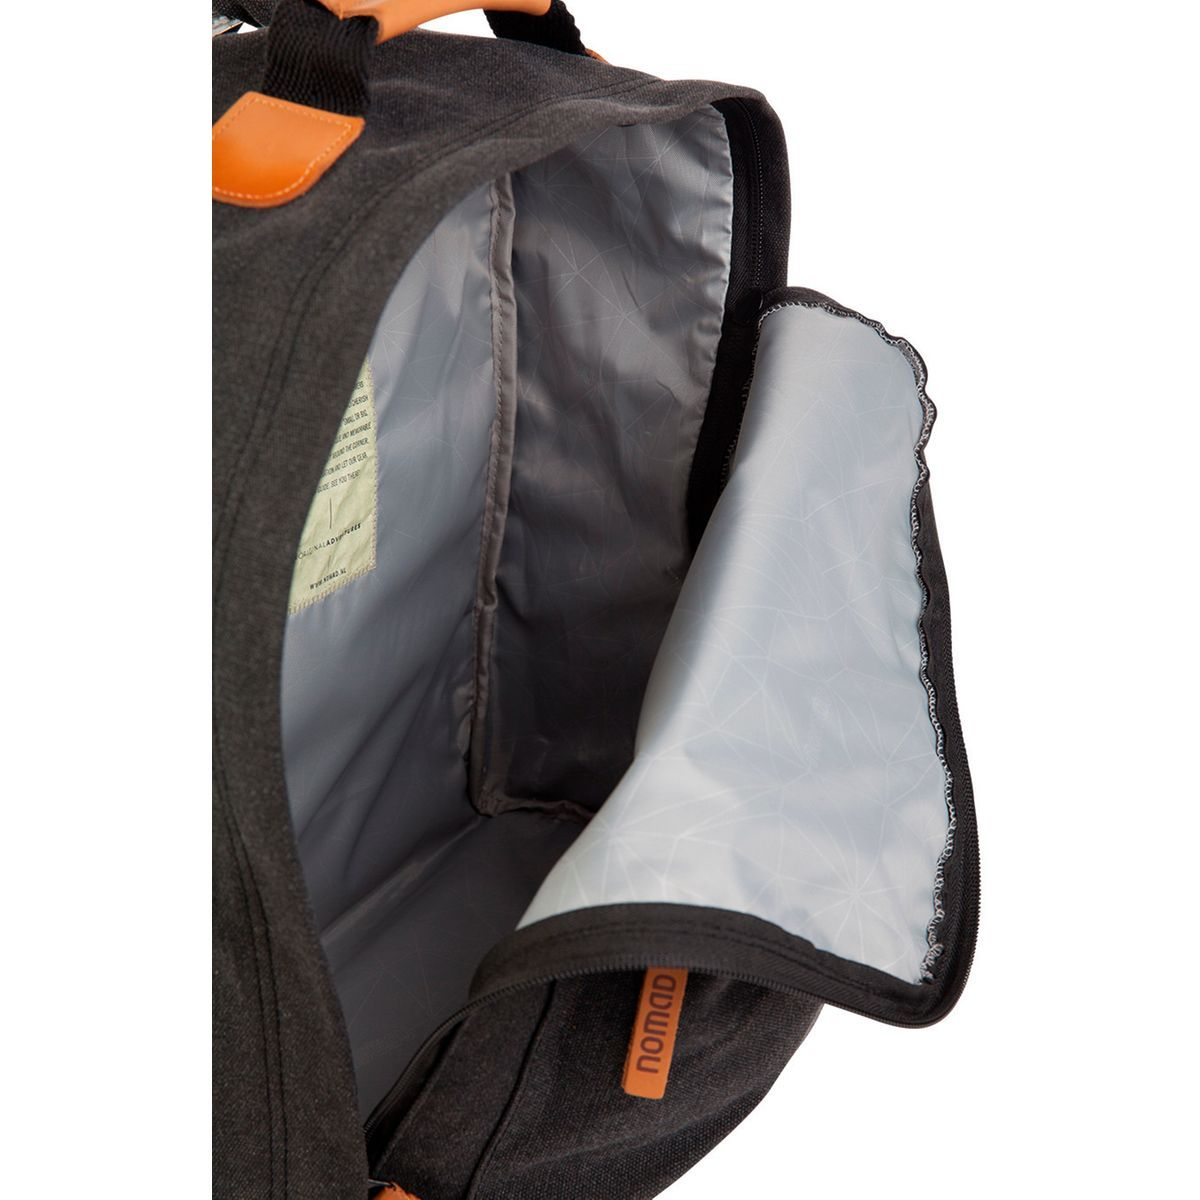 Clay Sac A Dos 18l Noir Taille Taille Unique In 2019 Products Sac Cuir